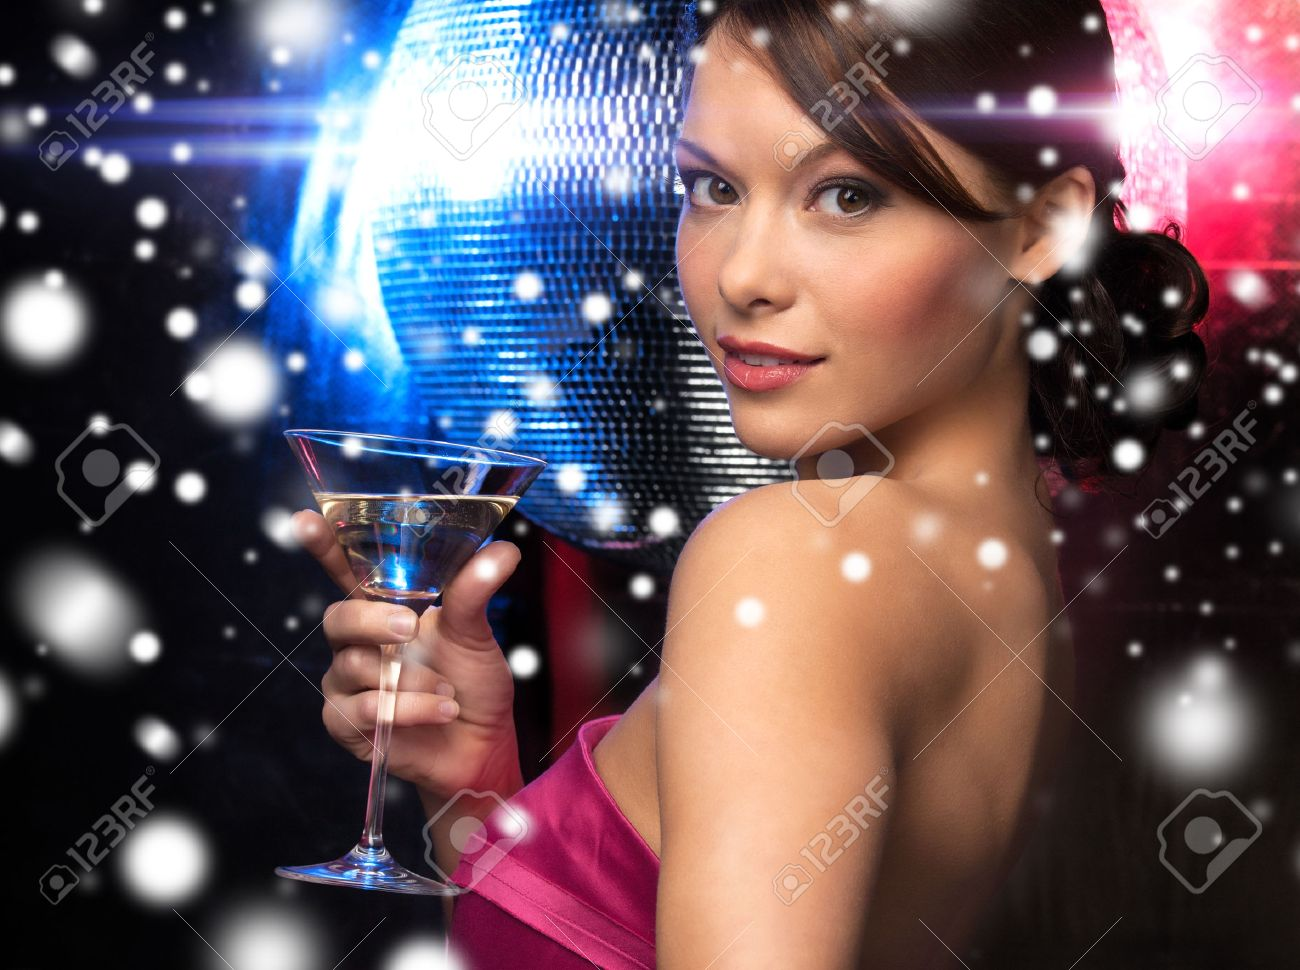 New Year's Eve Girl